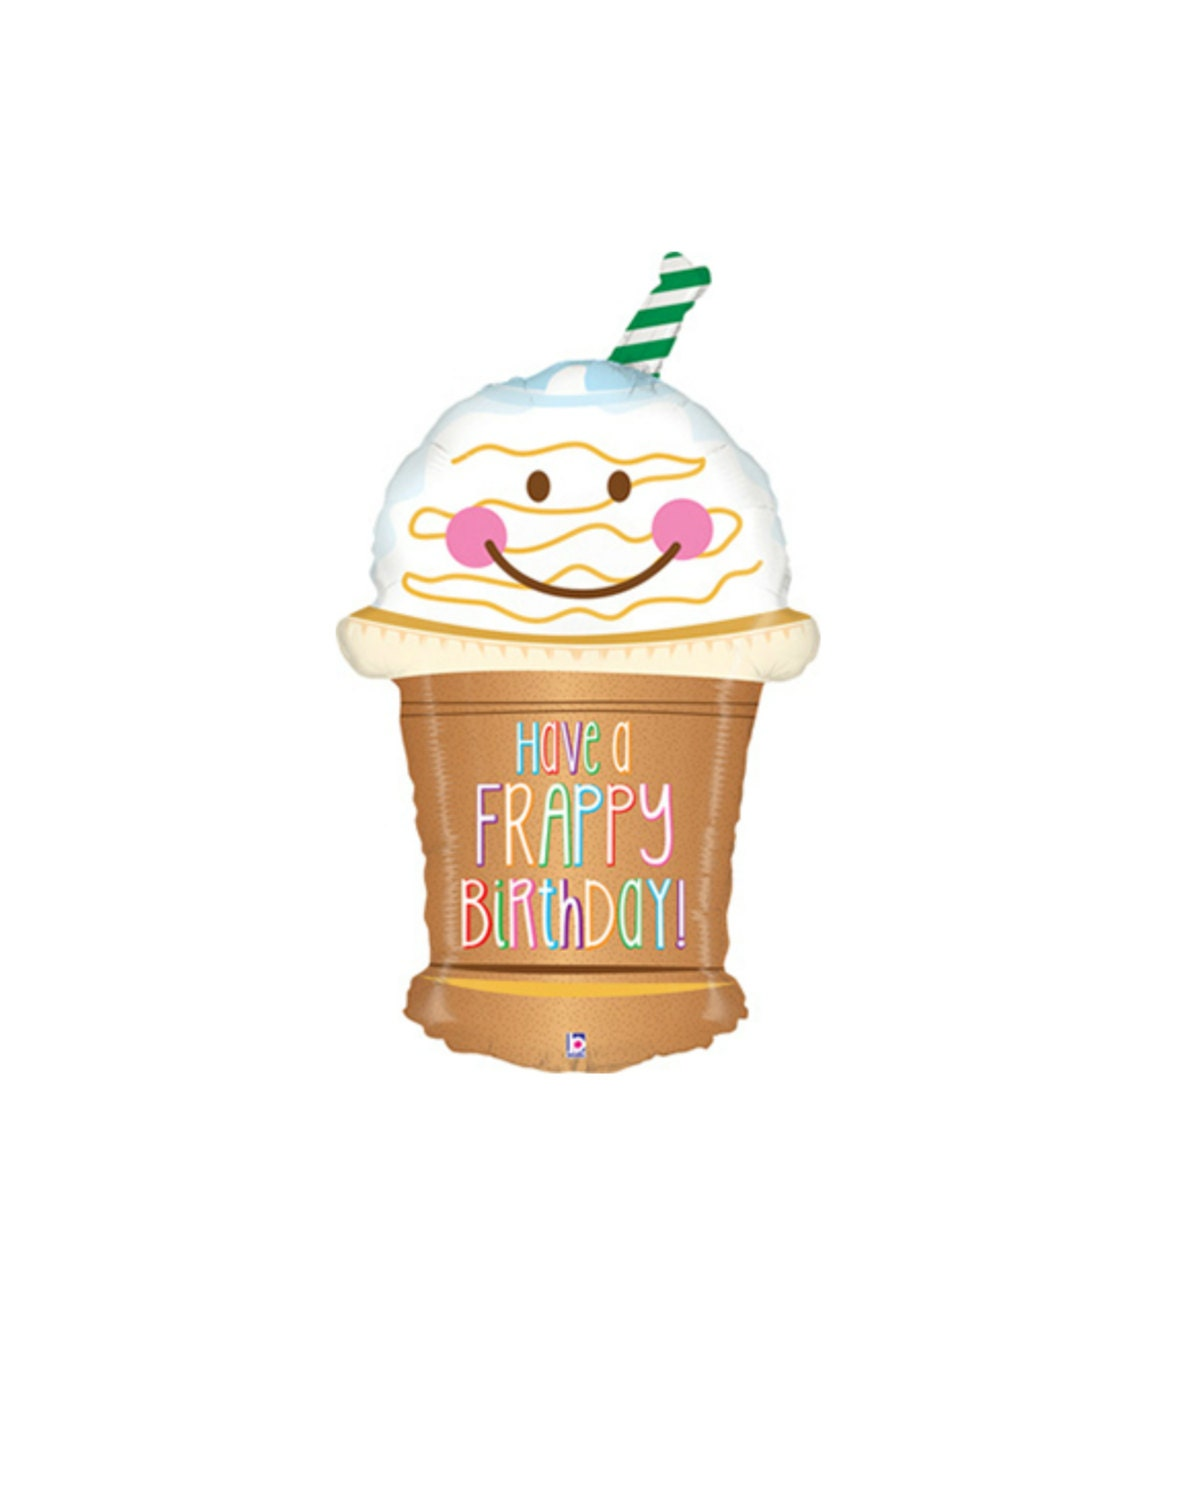 HUGE 32 Frappy Birthday Balloon. Coffee Lovers Birthday